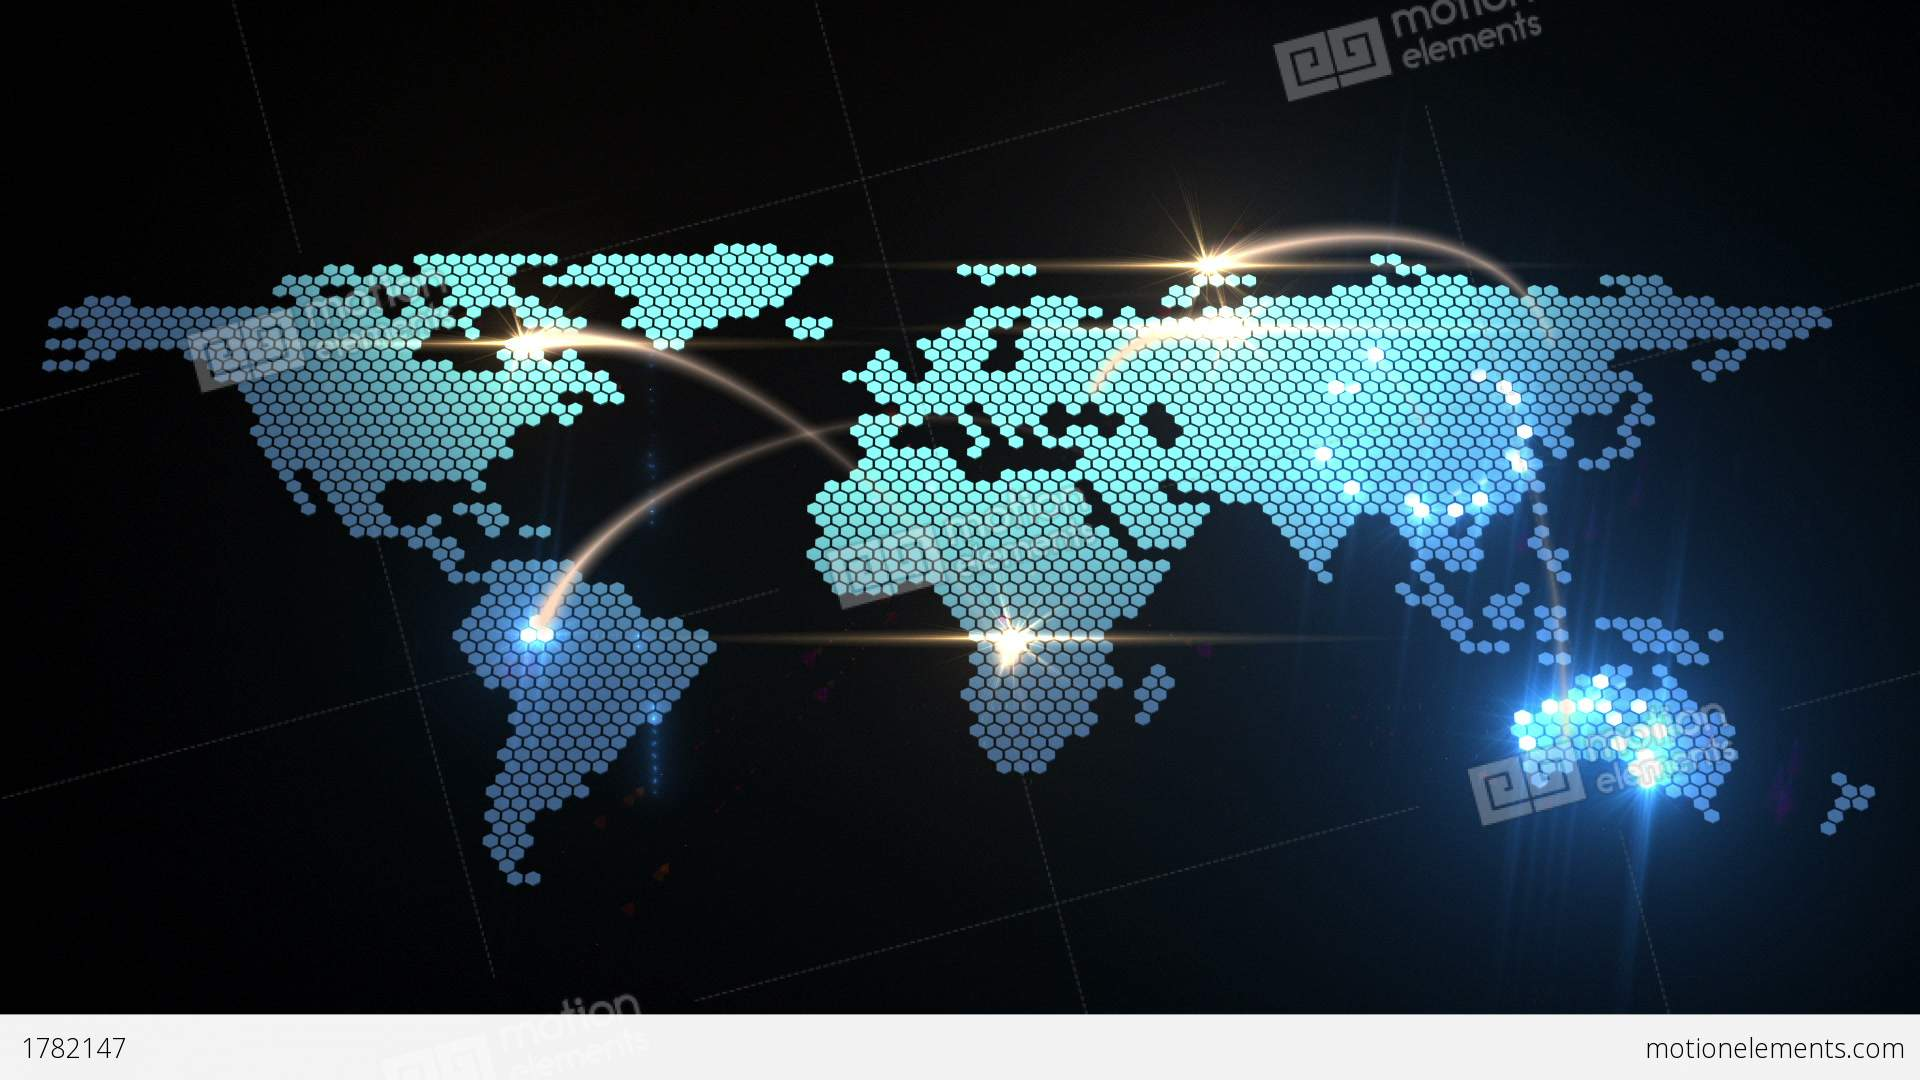 World map animation stock animation 1782147 world map animation stock video footage gumiabroncs Choice Image